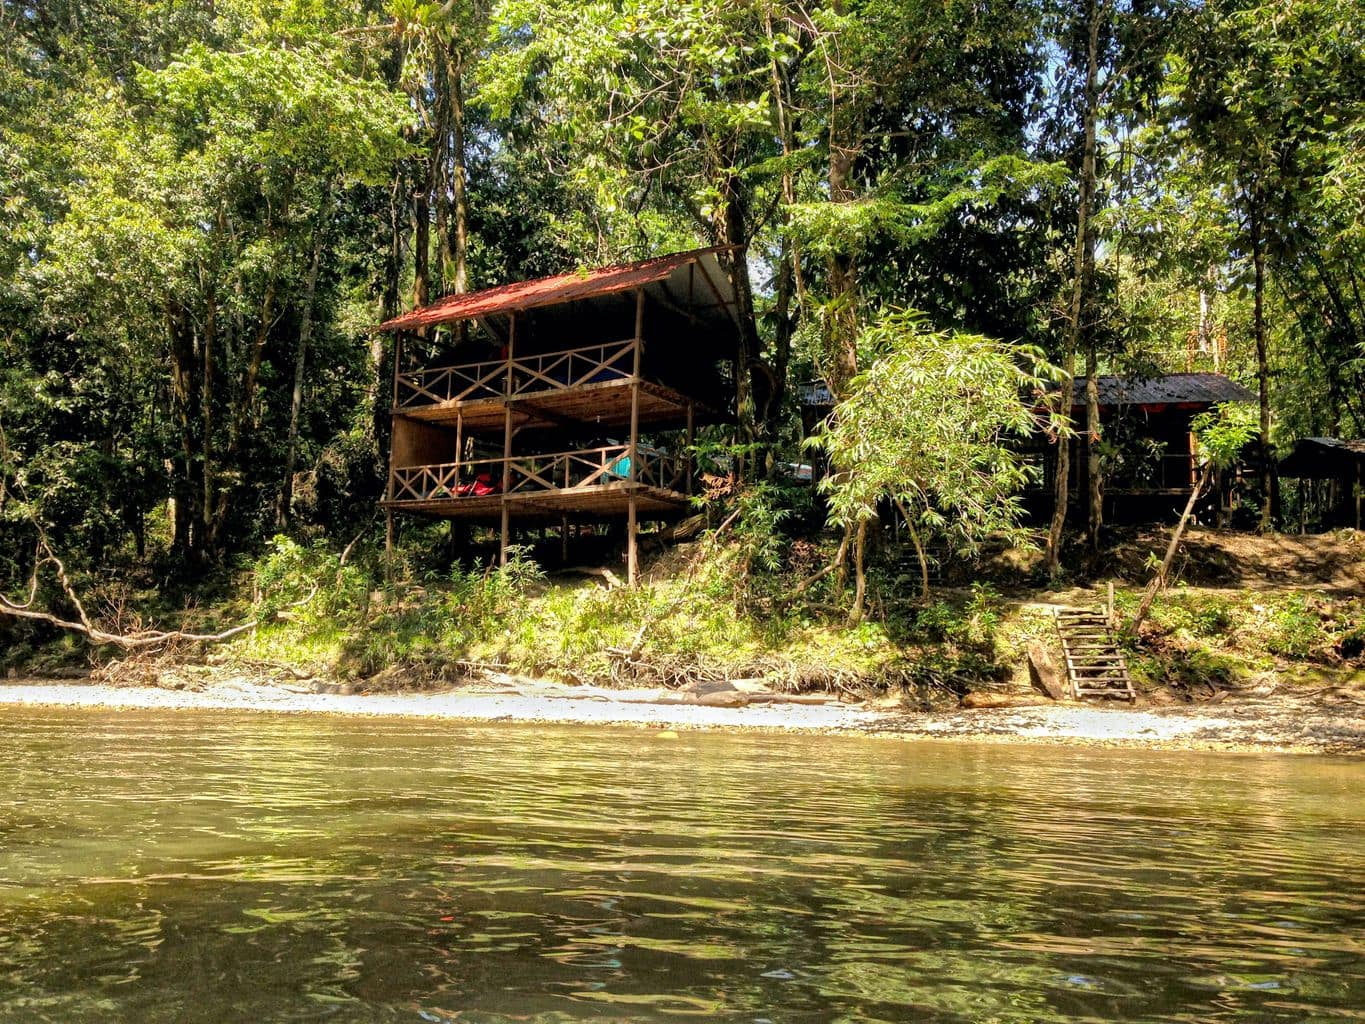 House in the jungle of Brunei